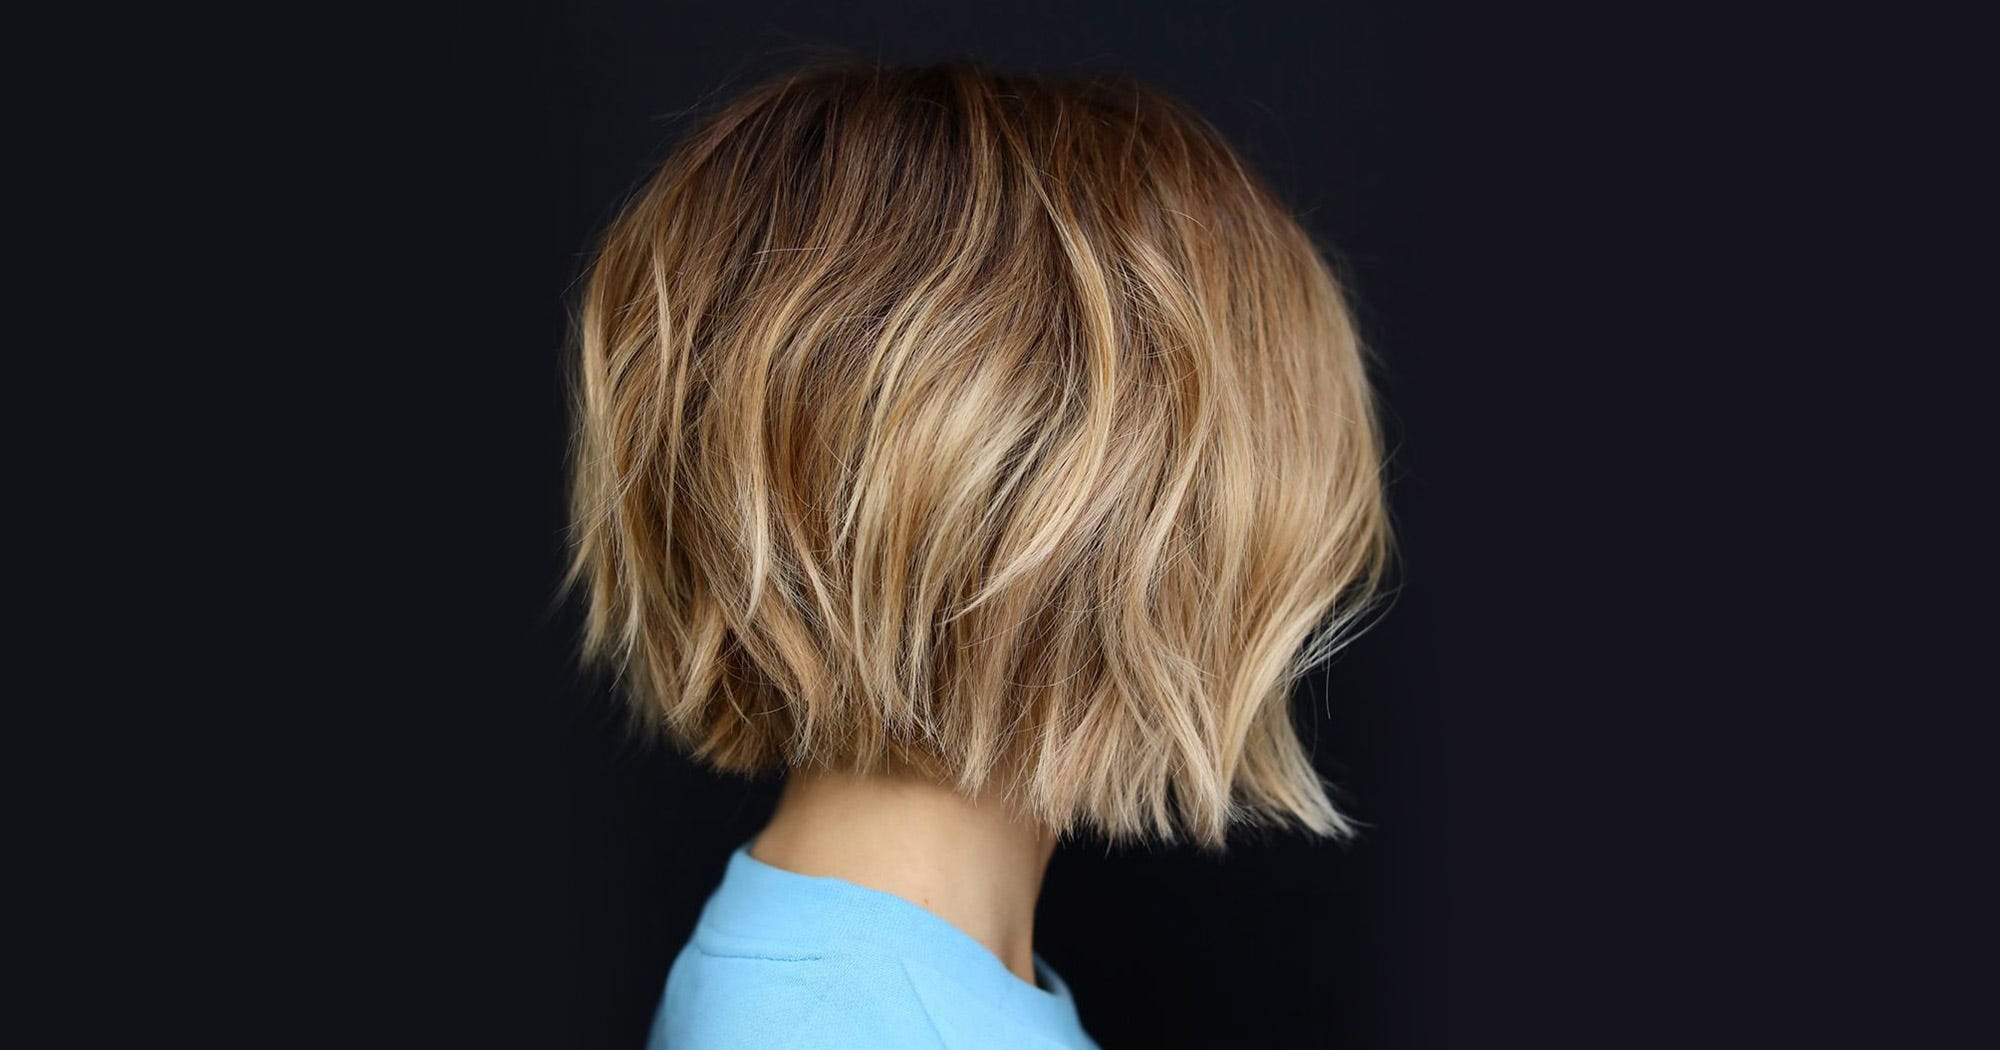 13 Must-Copy Takes On This Winter's Most Versatile Bob Haircut